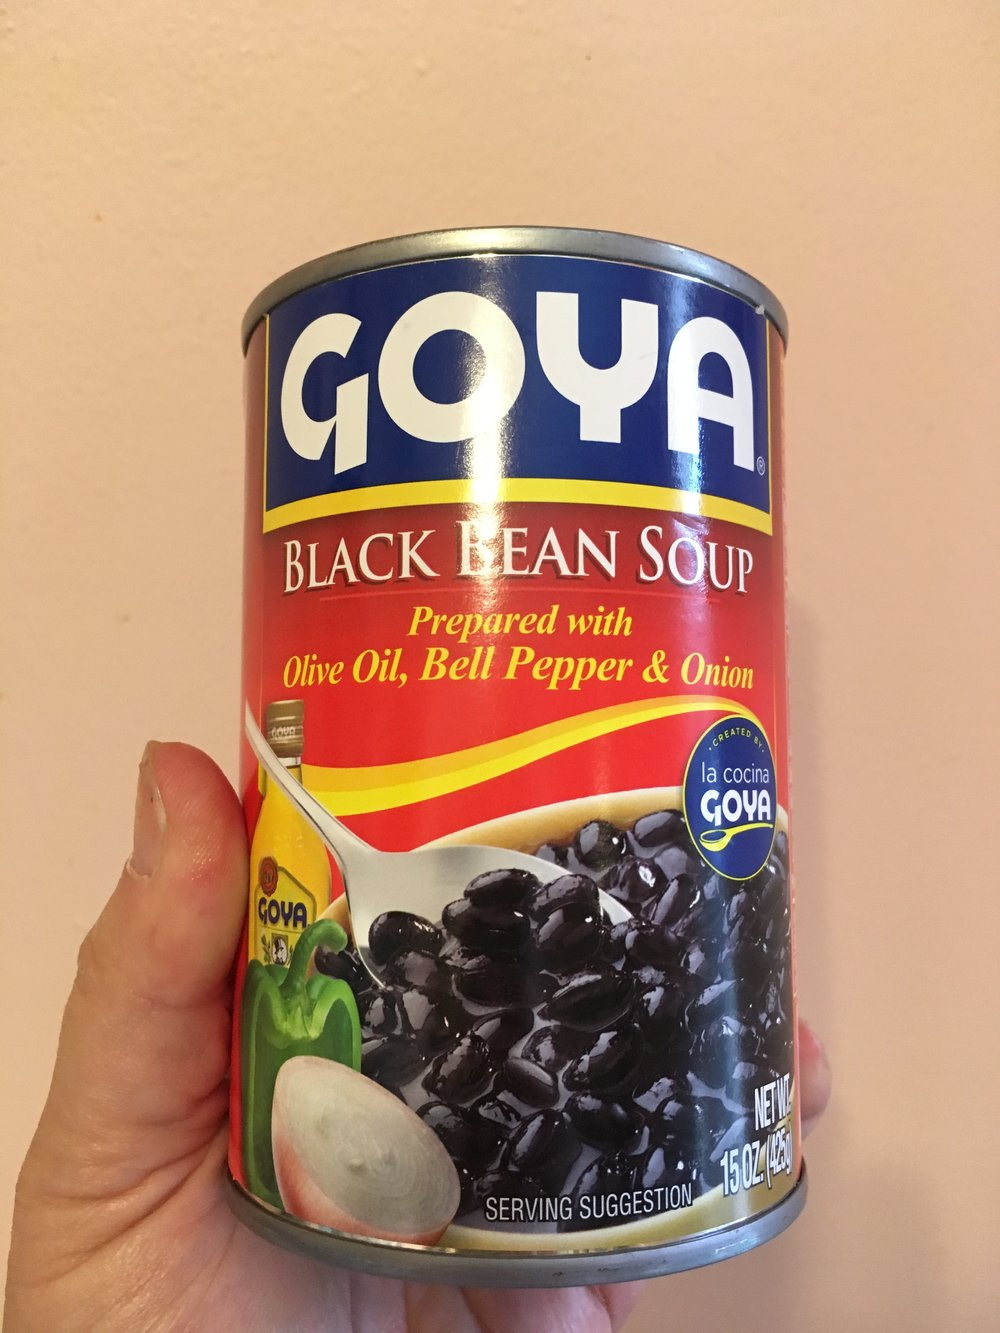 Tamales + rice + Goya black bean soup = satisfying lunch